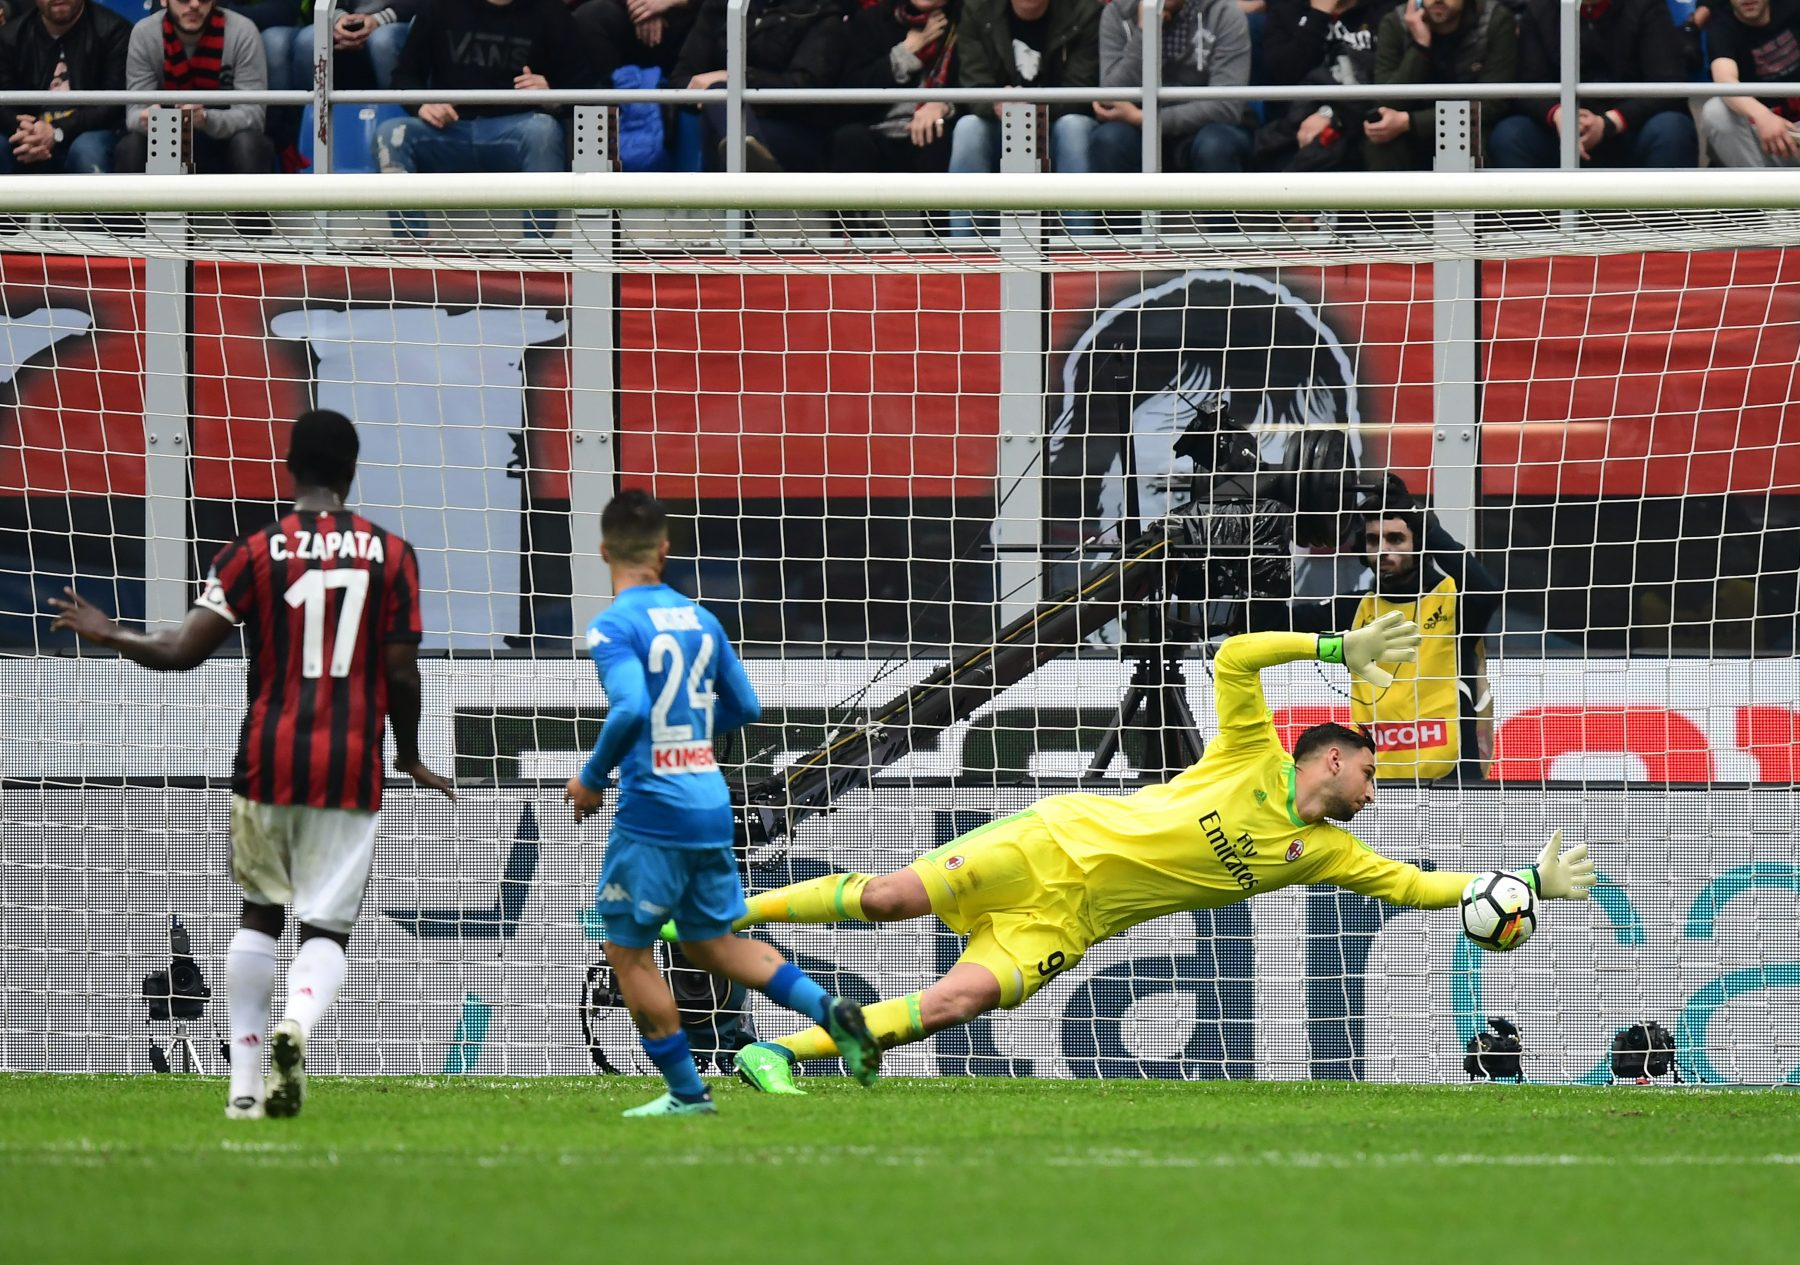 Both Napoli, Milan frustrated after 0-0 draw, Latest Football News